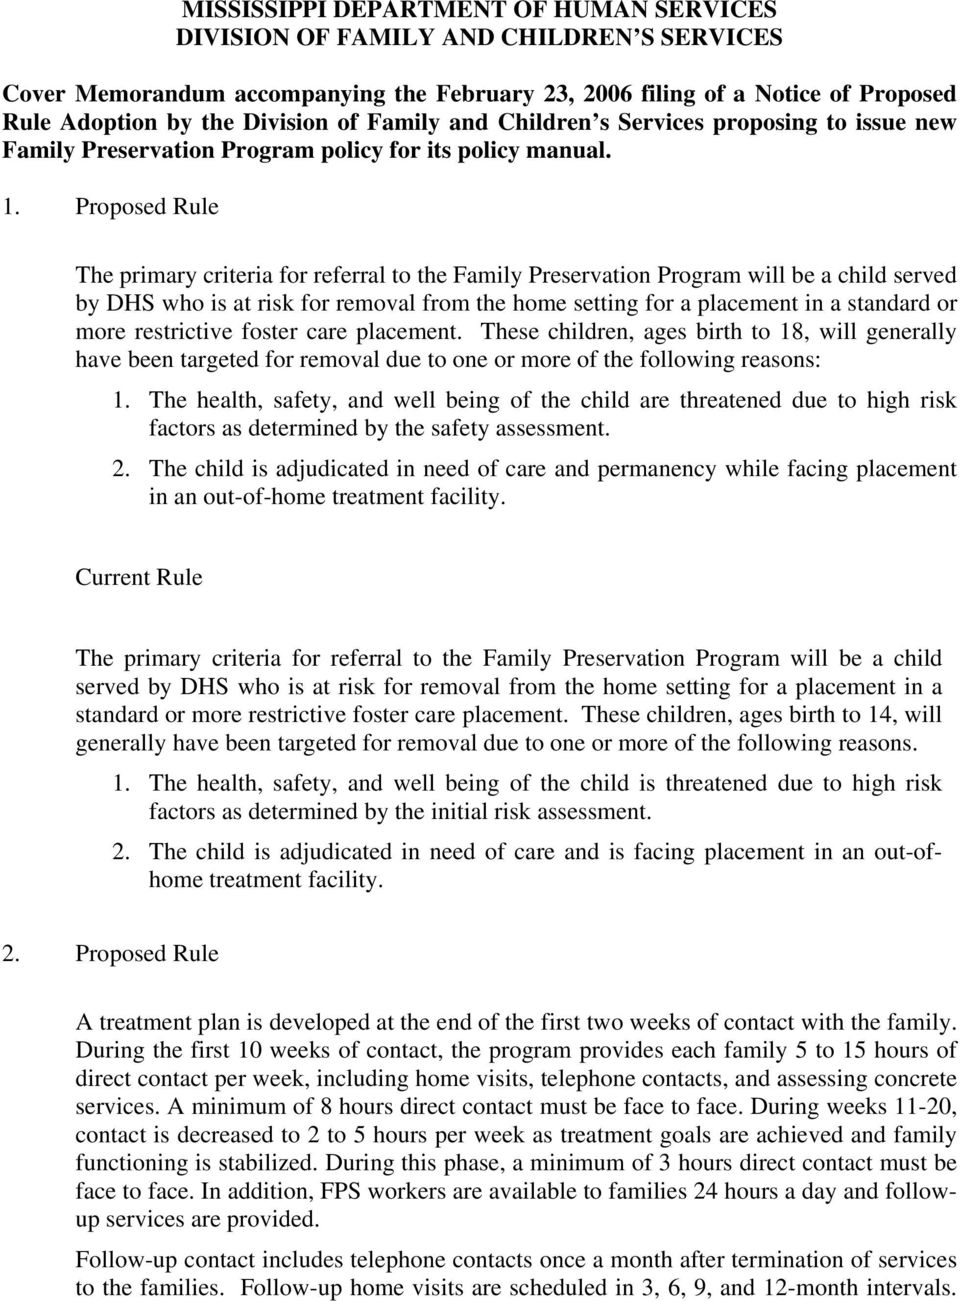 Proposed Rule The primary criteria for referral to the Family Preservation Program will be a child served by DHS who is at risk for removal from the home setting for a placement in a standard or more